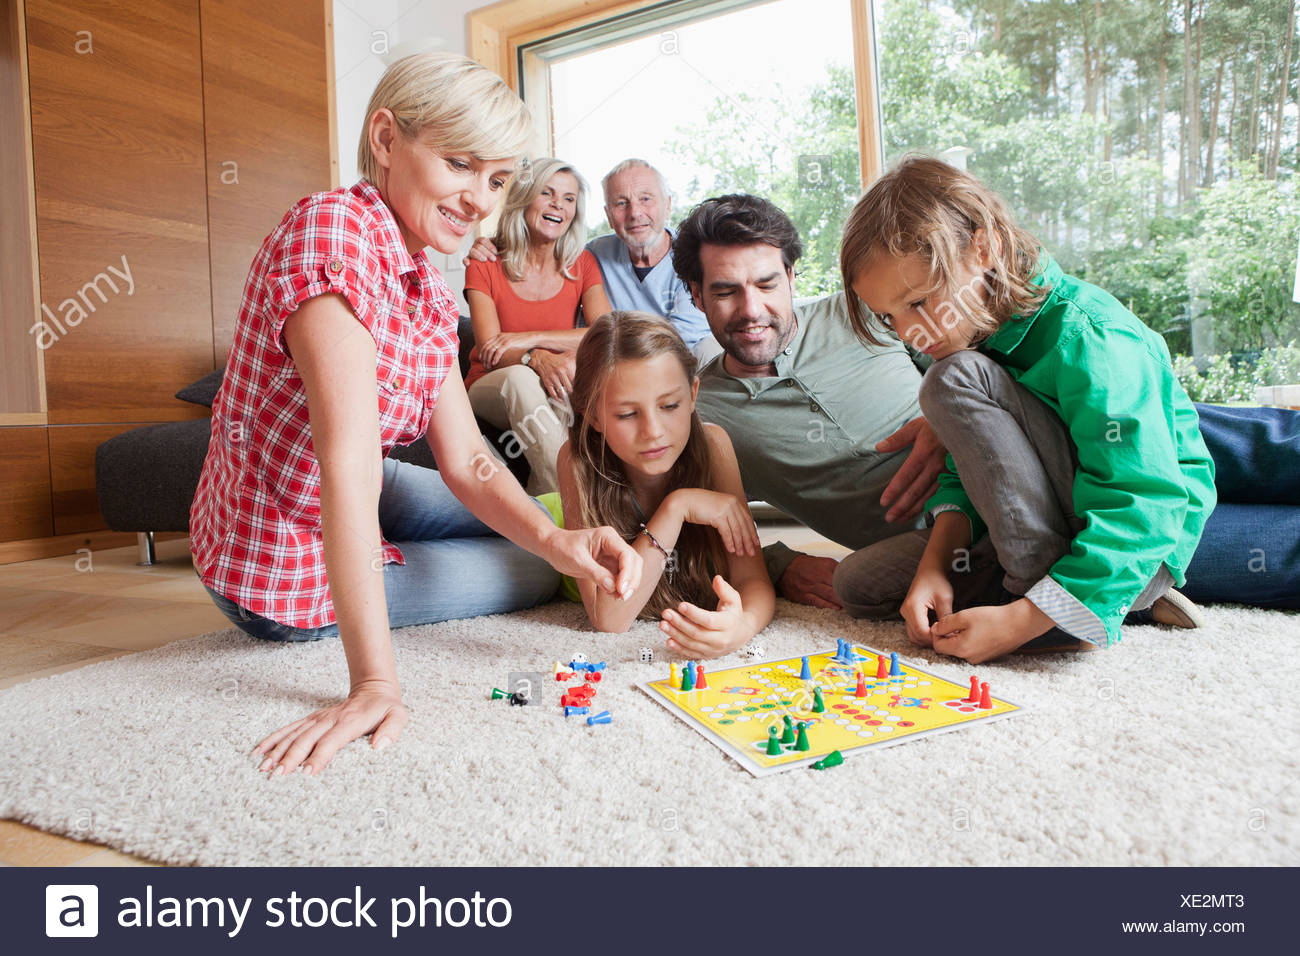 Germany, Bavaria, Nuremberg, Family playing board game together Stock Photo